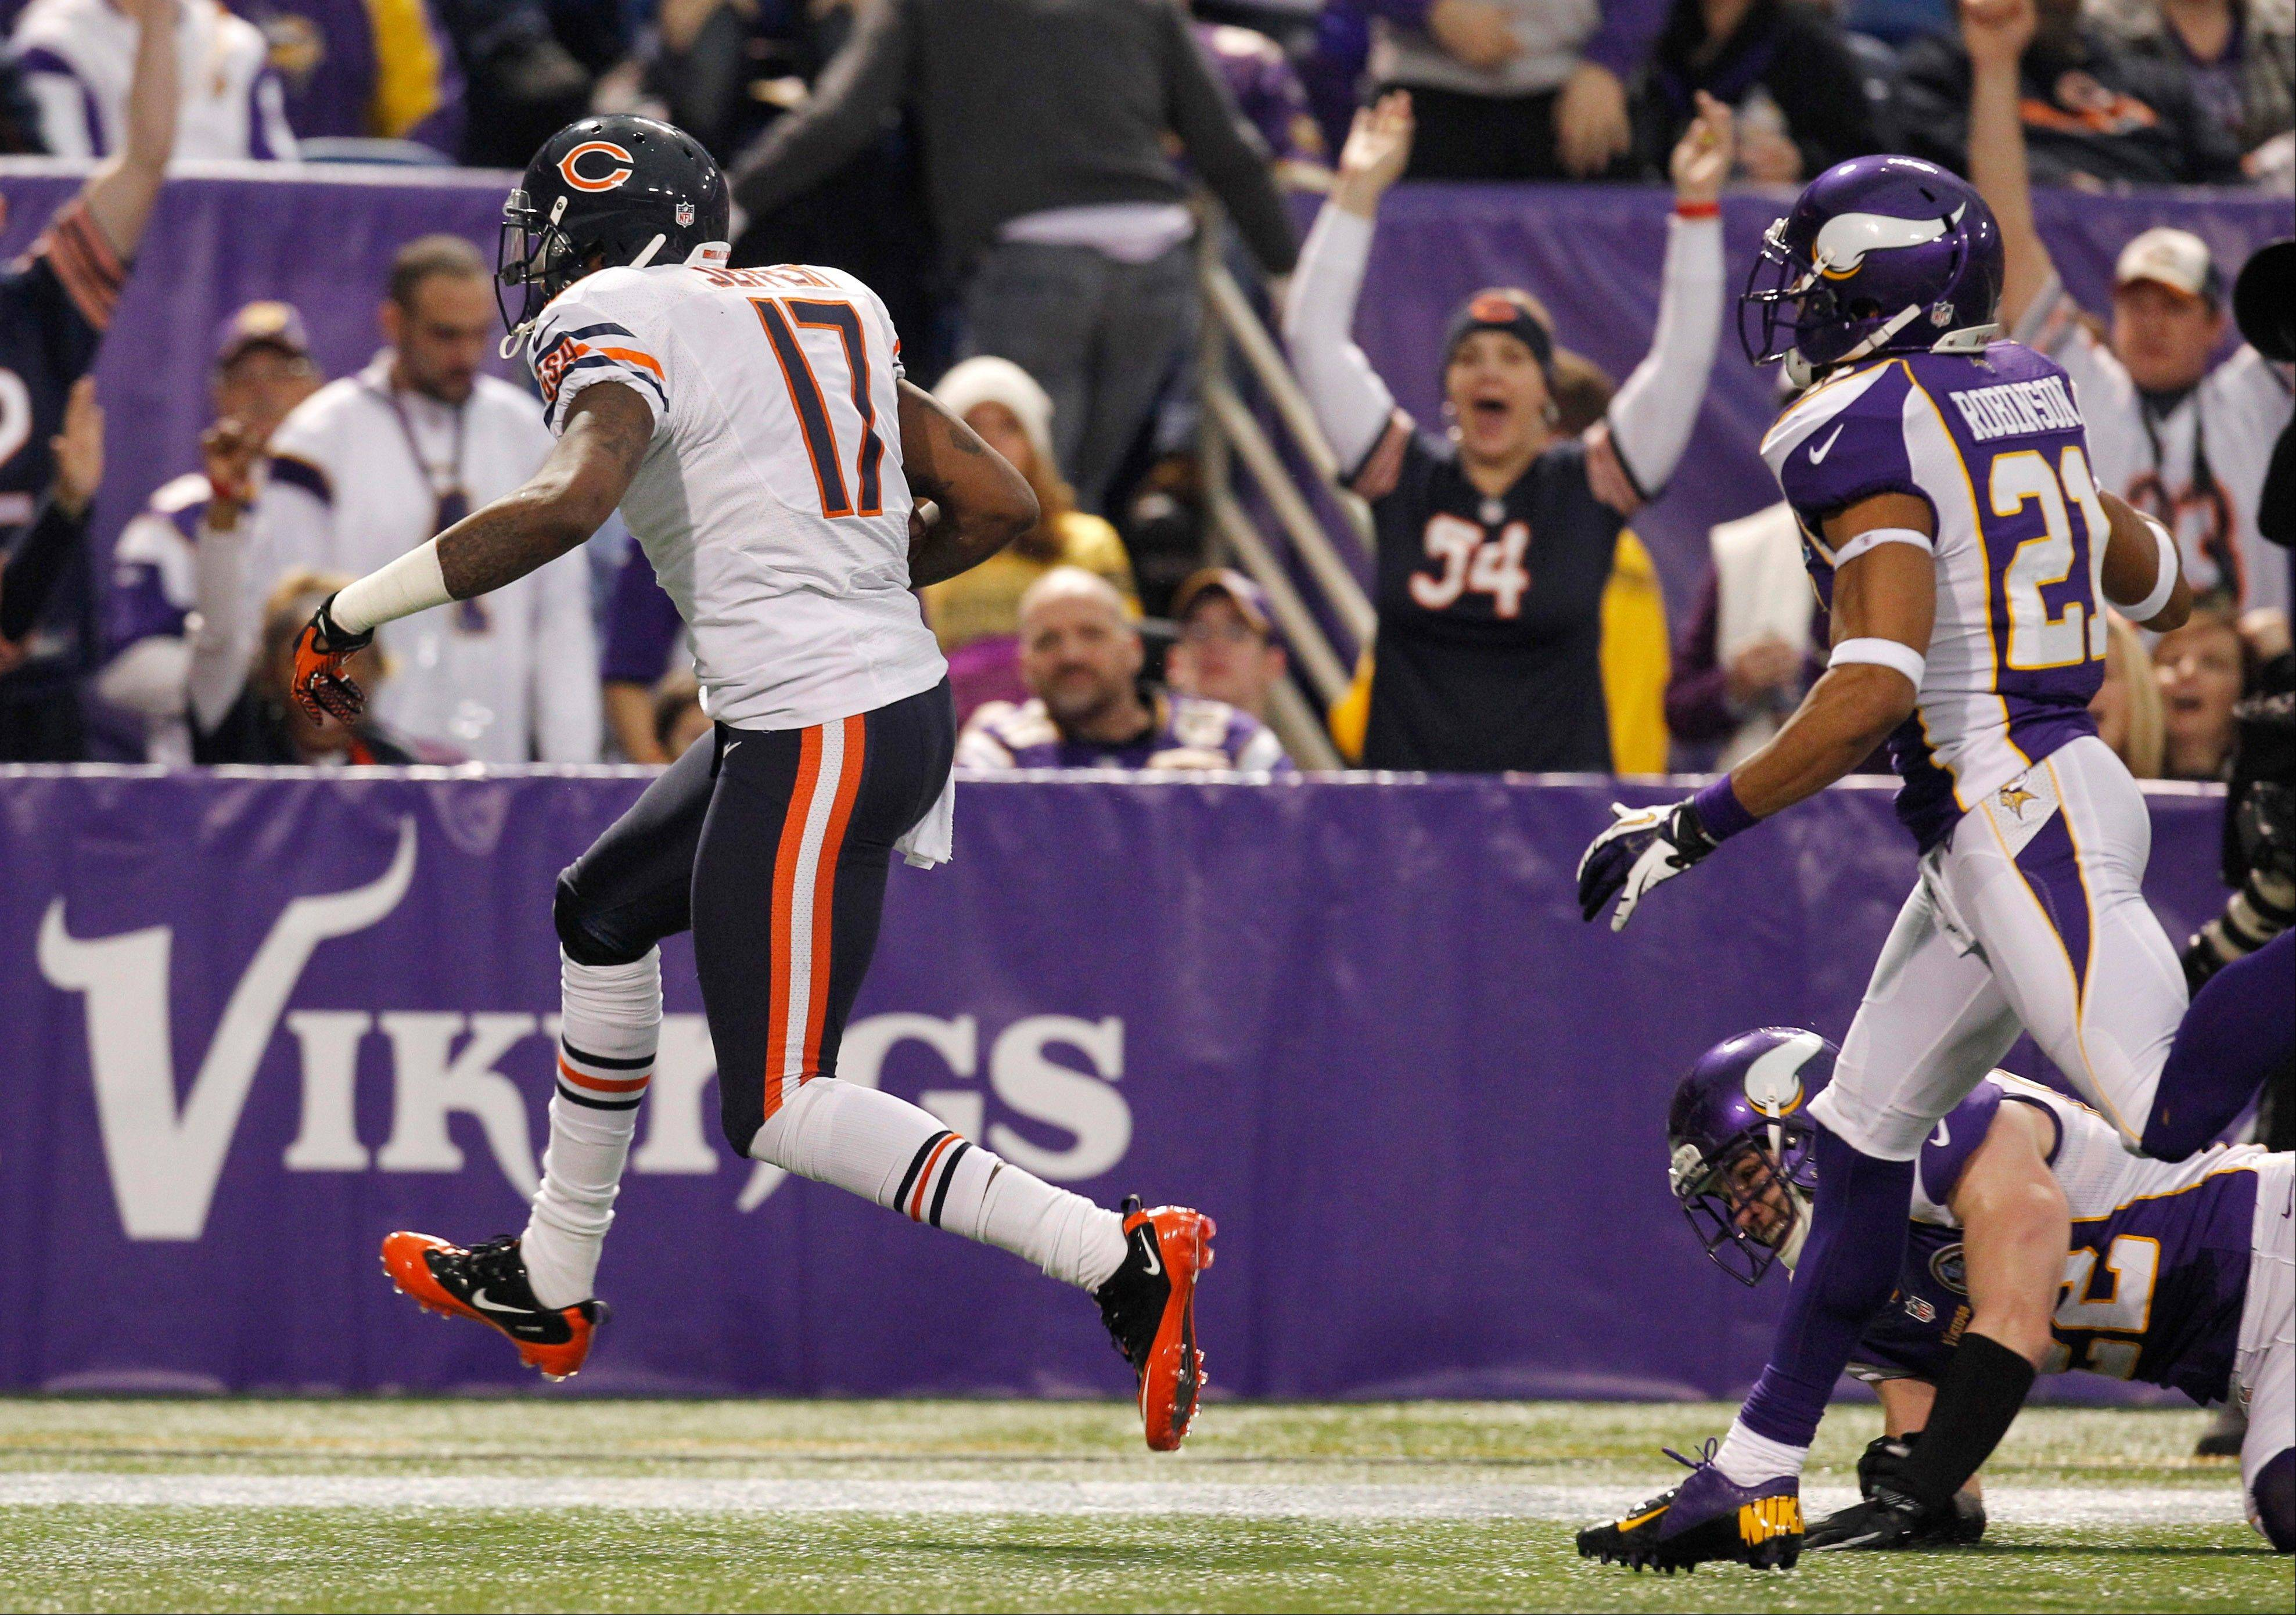 Chicago Bears wide receiver Alshon Jeffery, left, makes a 23-yard touchdown reception ahead of Minnesota Vikings cornerback Josh Robinson during the first half.